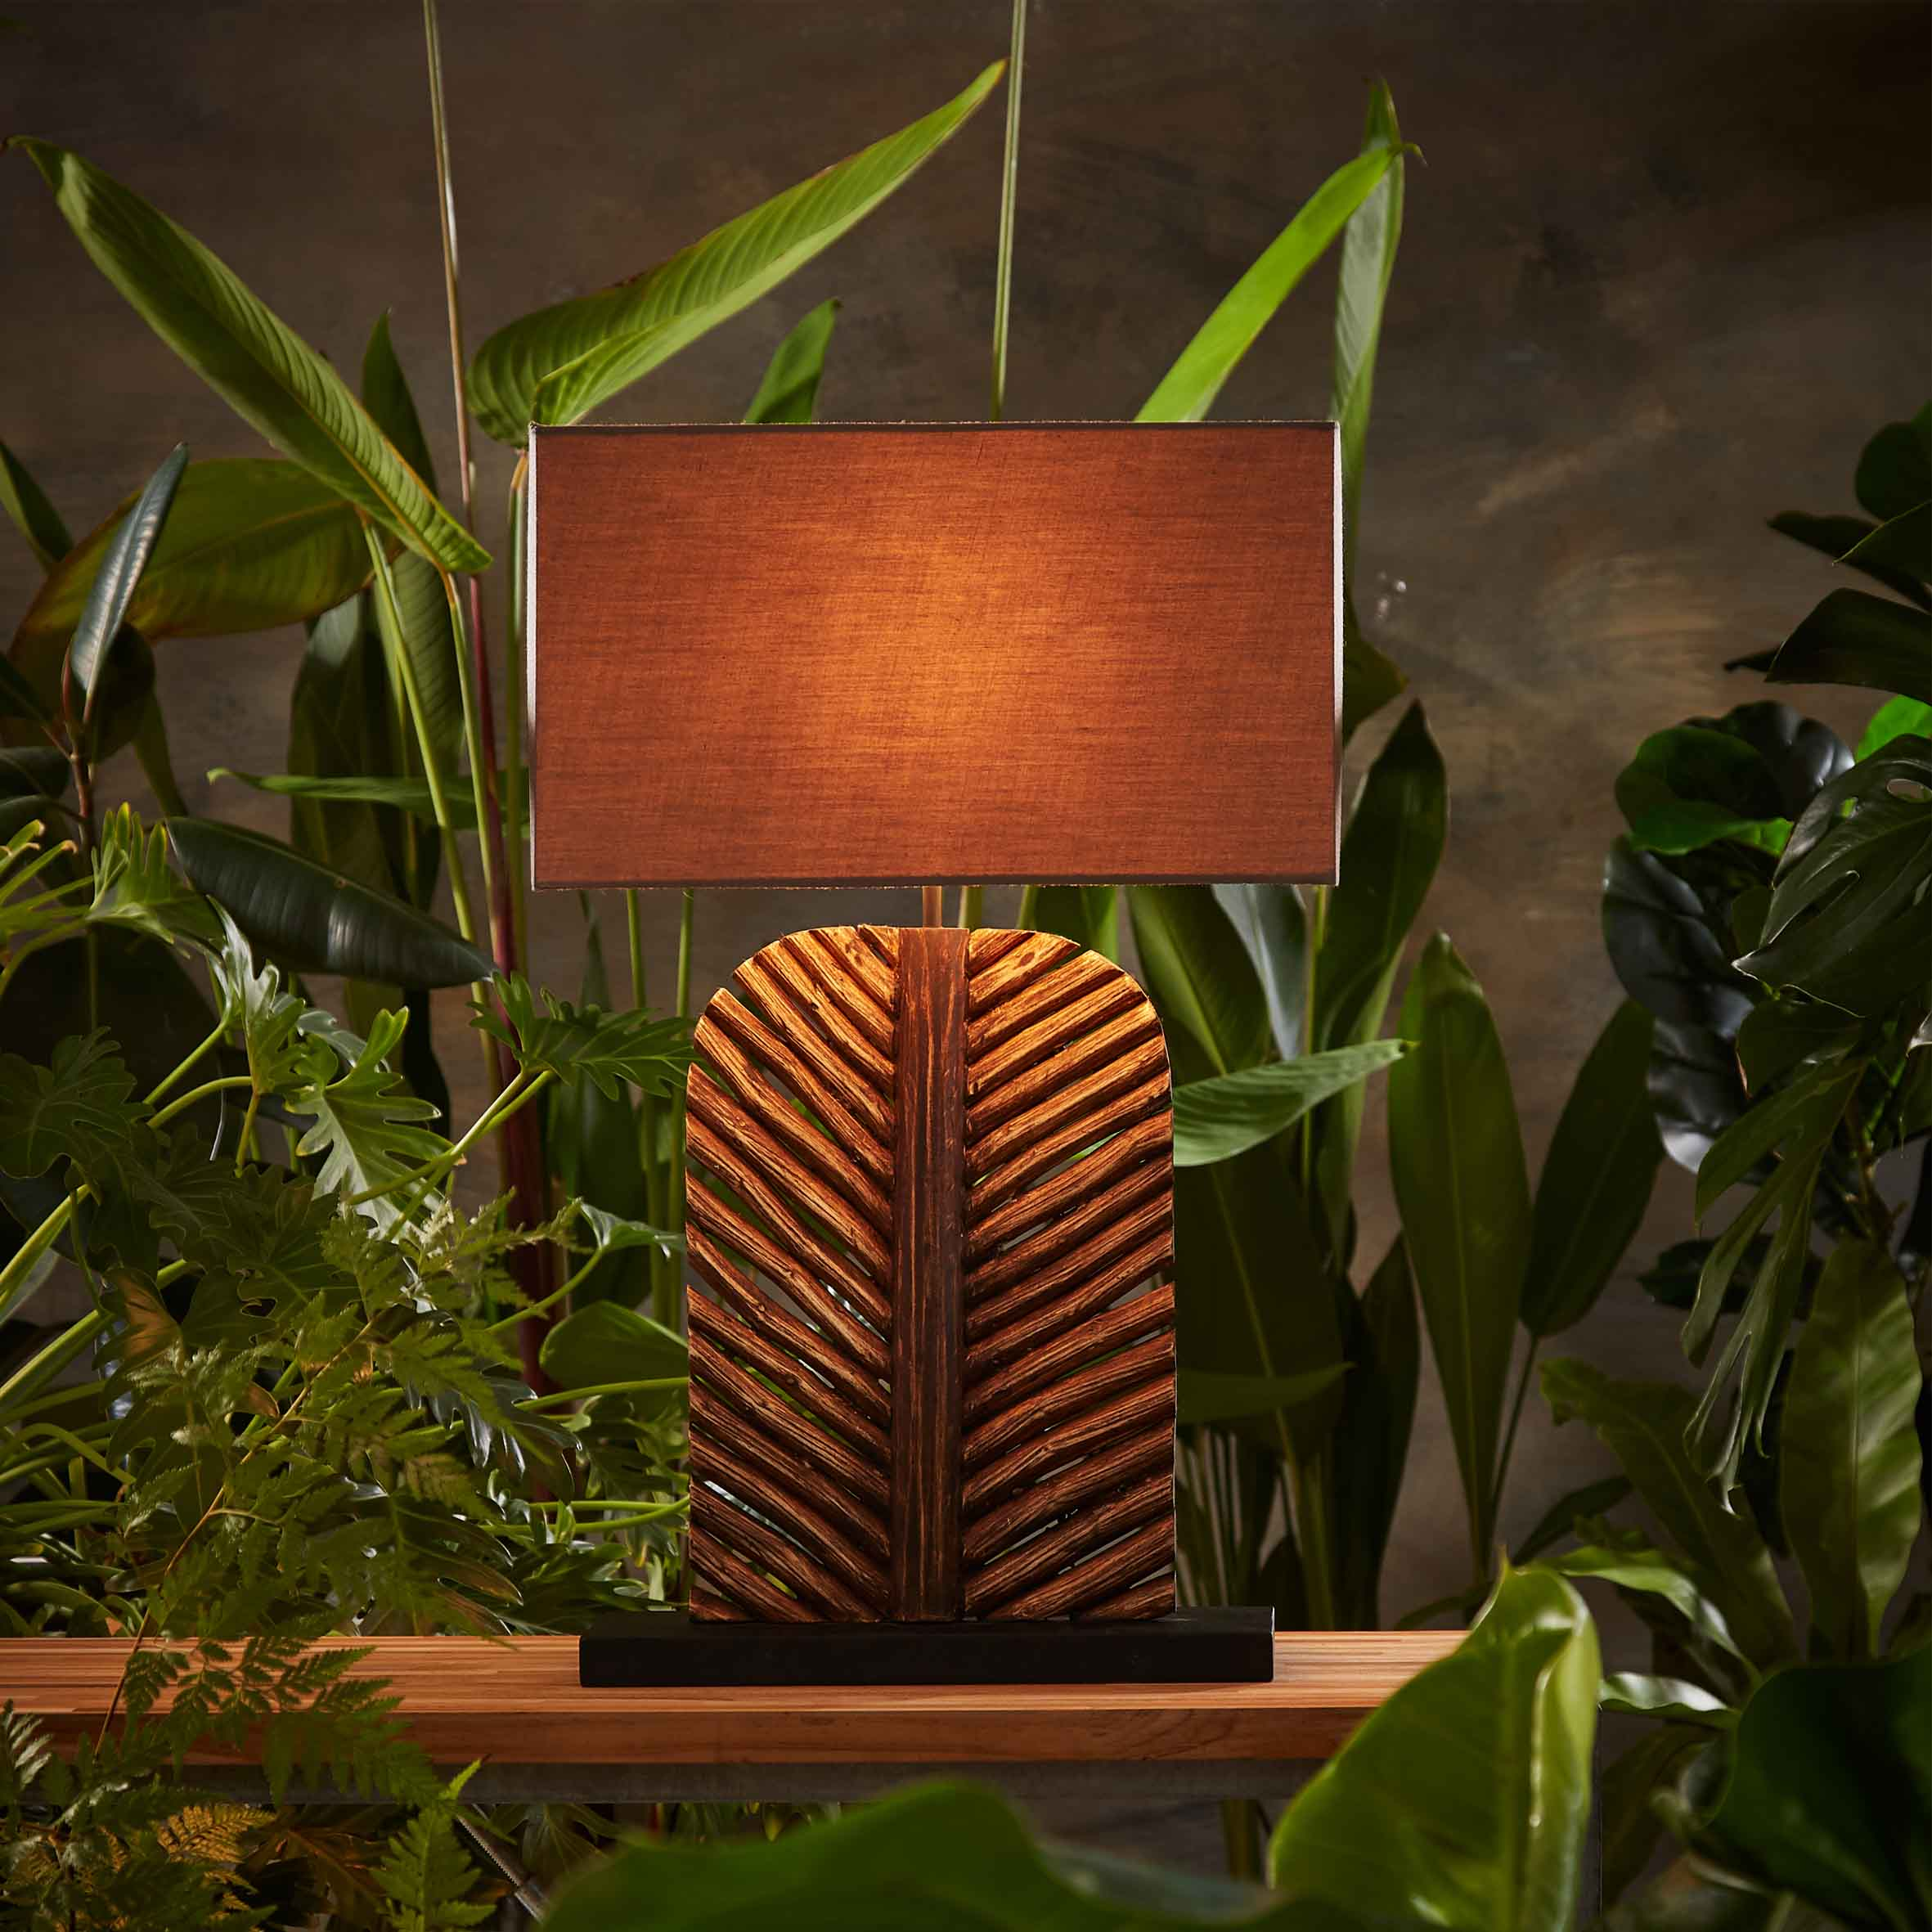 Forresta Leaf table lamp product photo #1